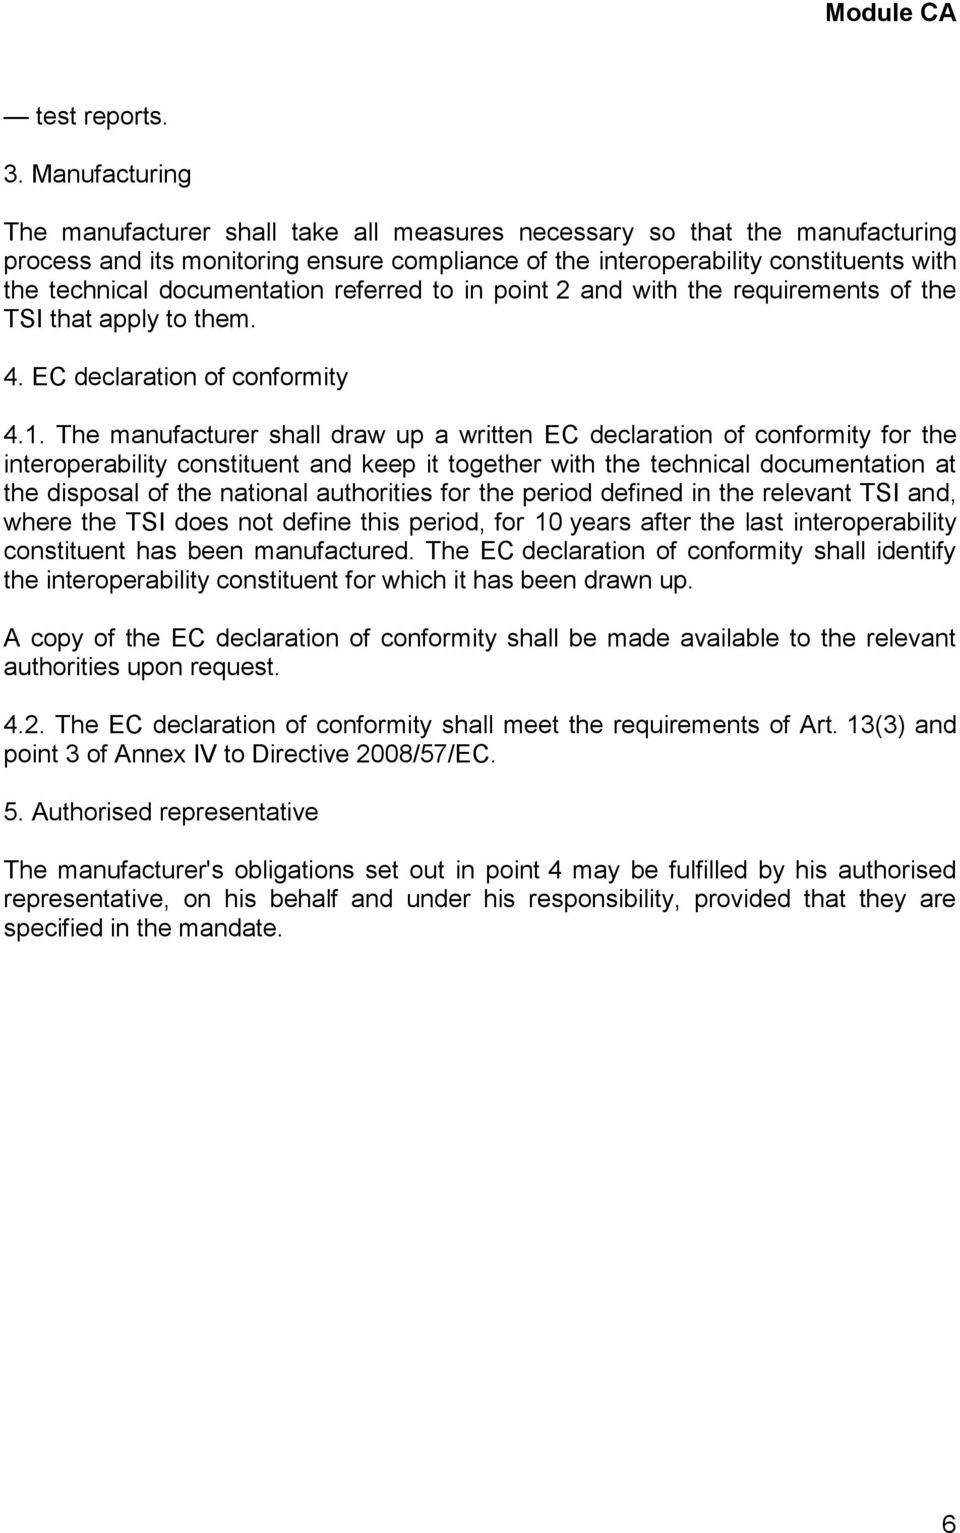 documentation referred to in point 2 and with the requirements of the TSI that apply to them. 4. EC declaration of conformity 4.1.